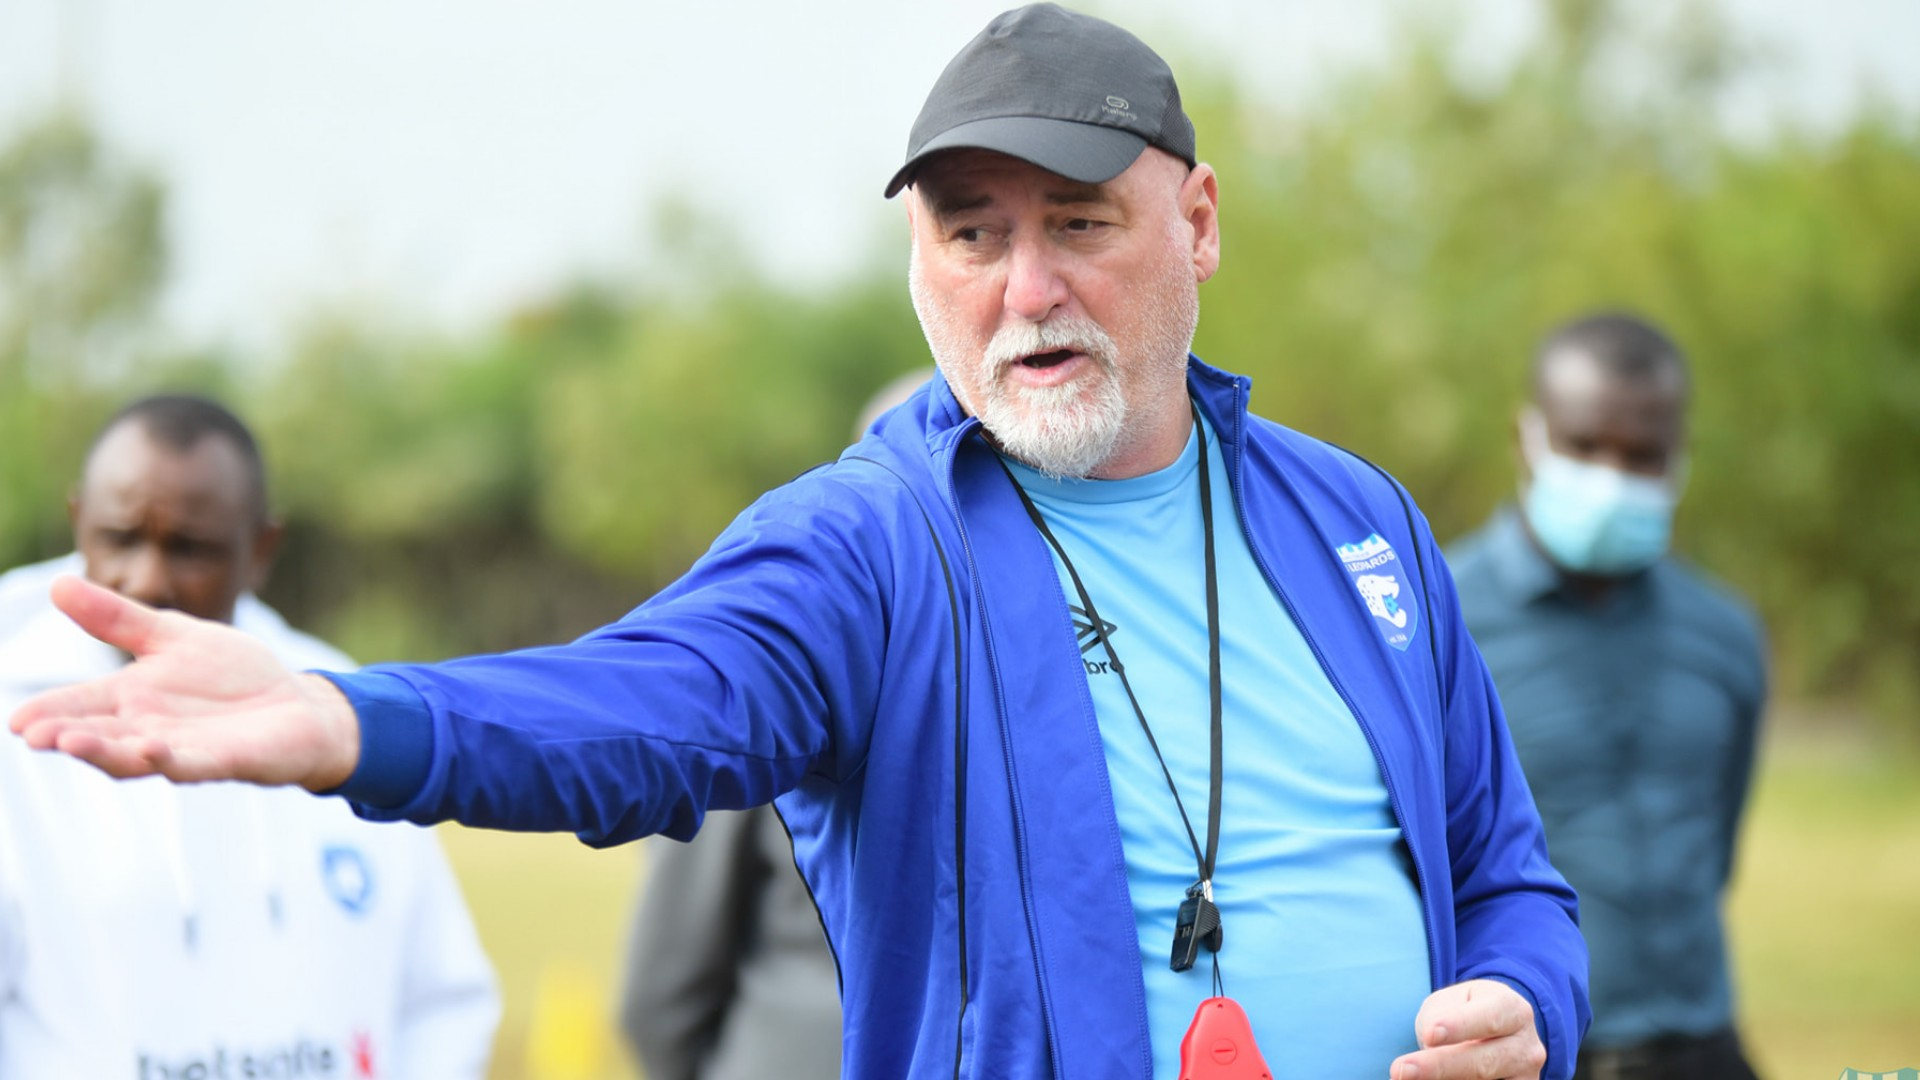 'Football is cruel' – AFC Leopards' Aussems after derby defeat to Gor Mahia